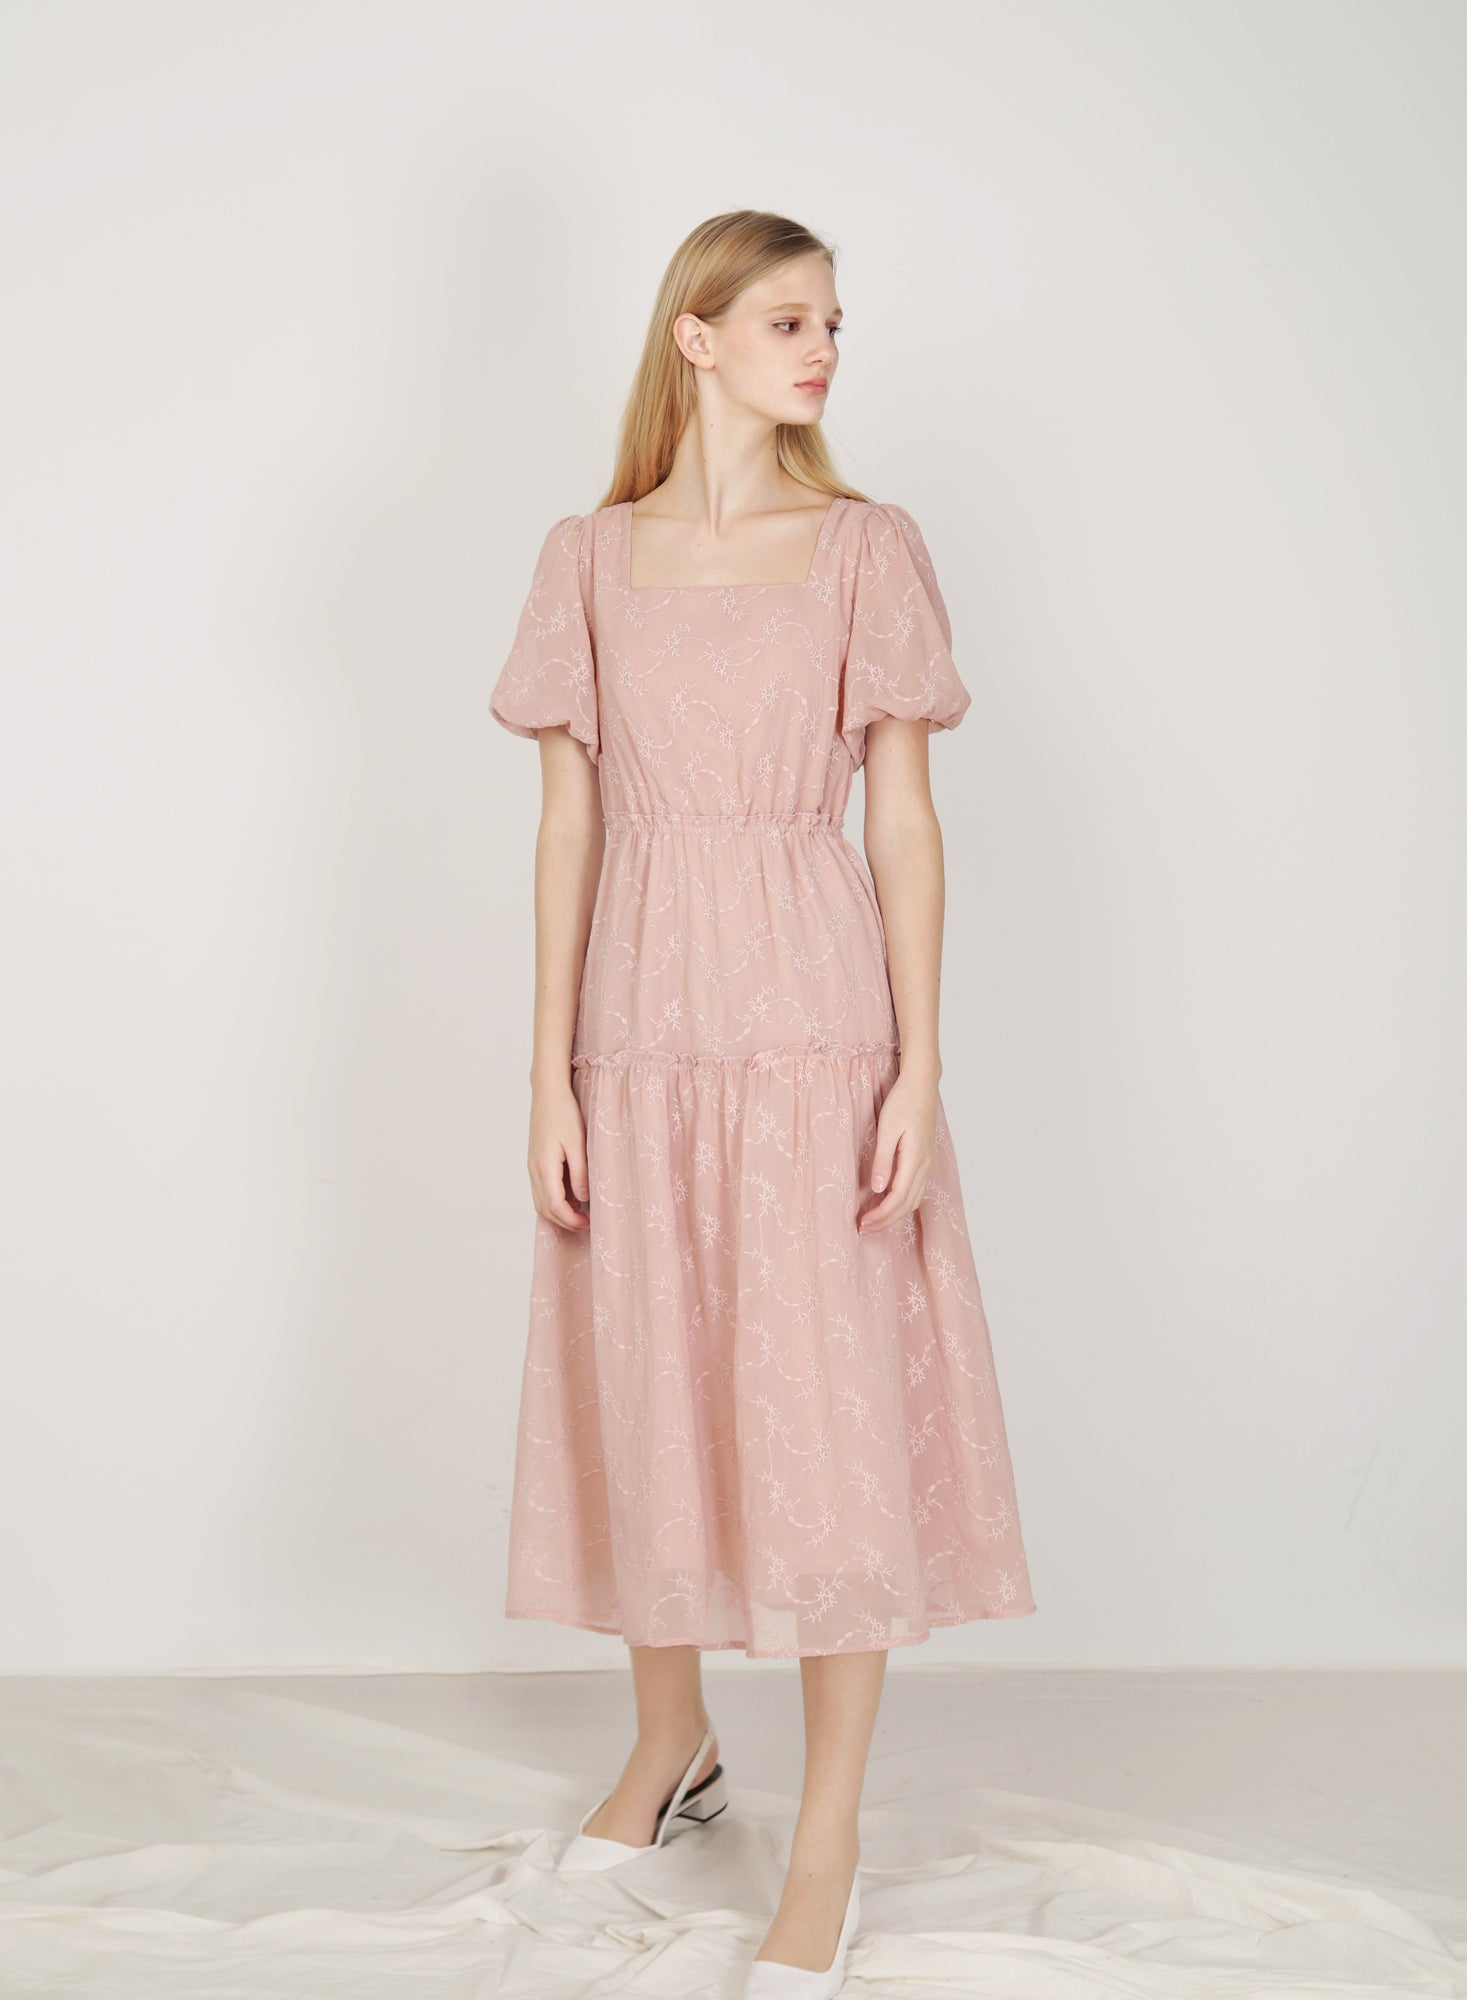 Facade Ribbon Tie Dress (Blush)